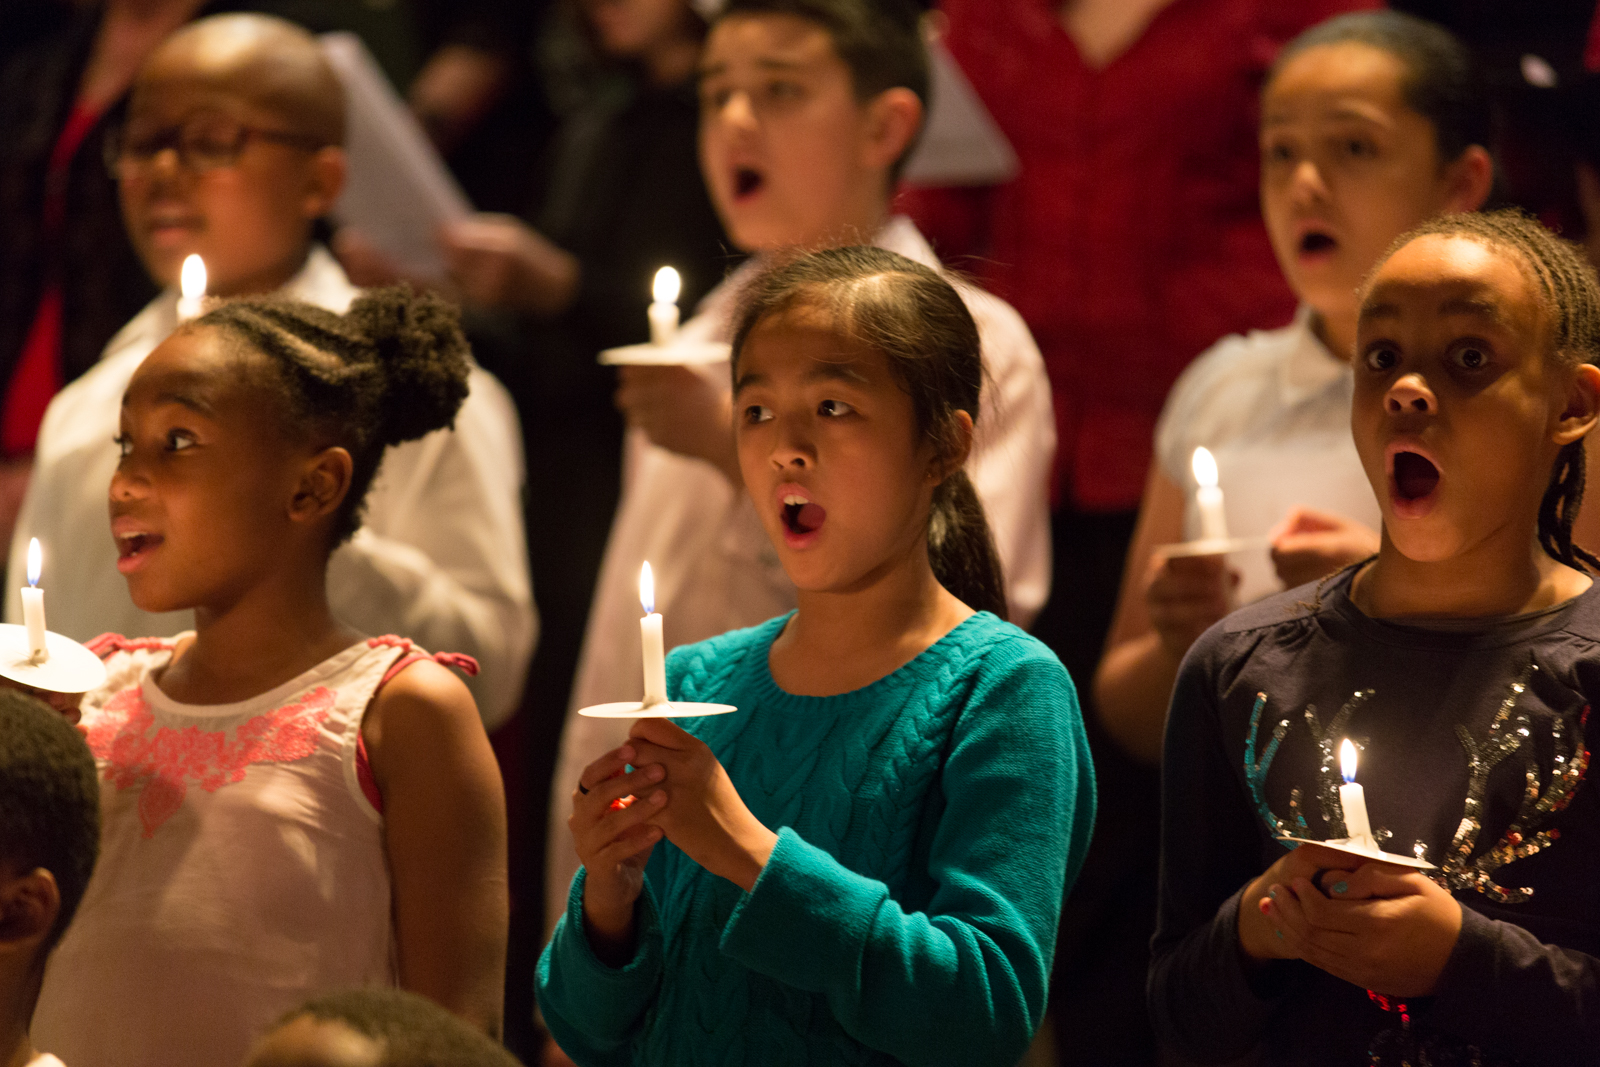 A row of young girls stand singing as part of a choir whilst holding candles